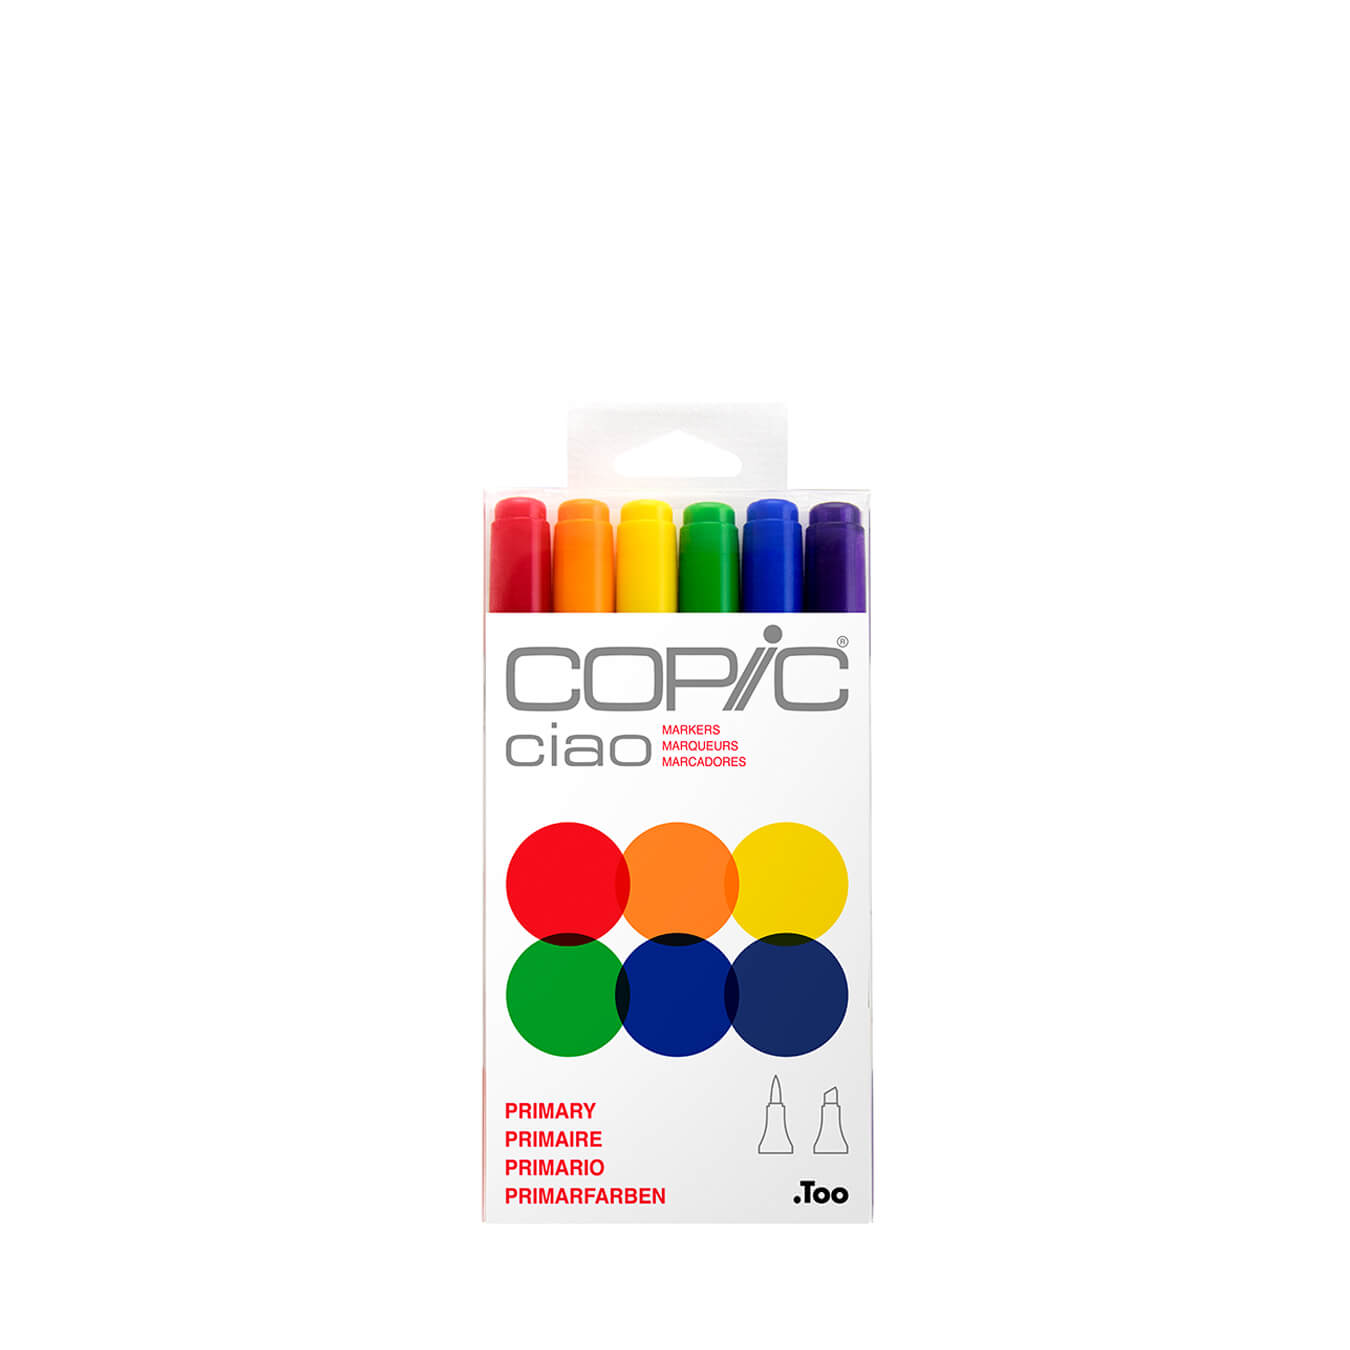 Copic Ciao 6 colors set Primary